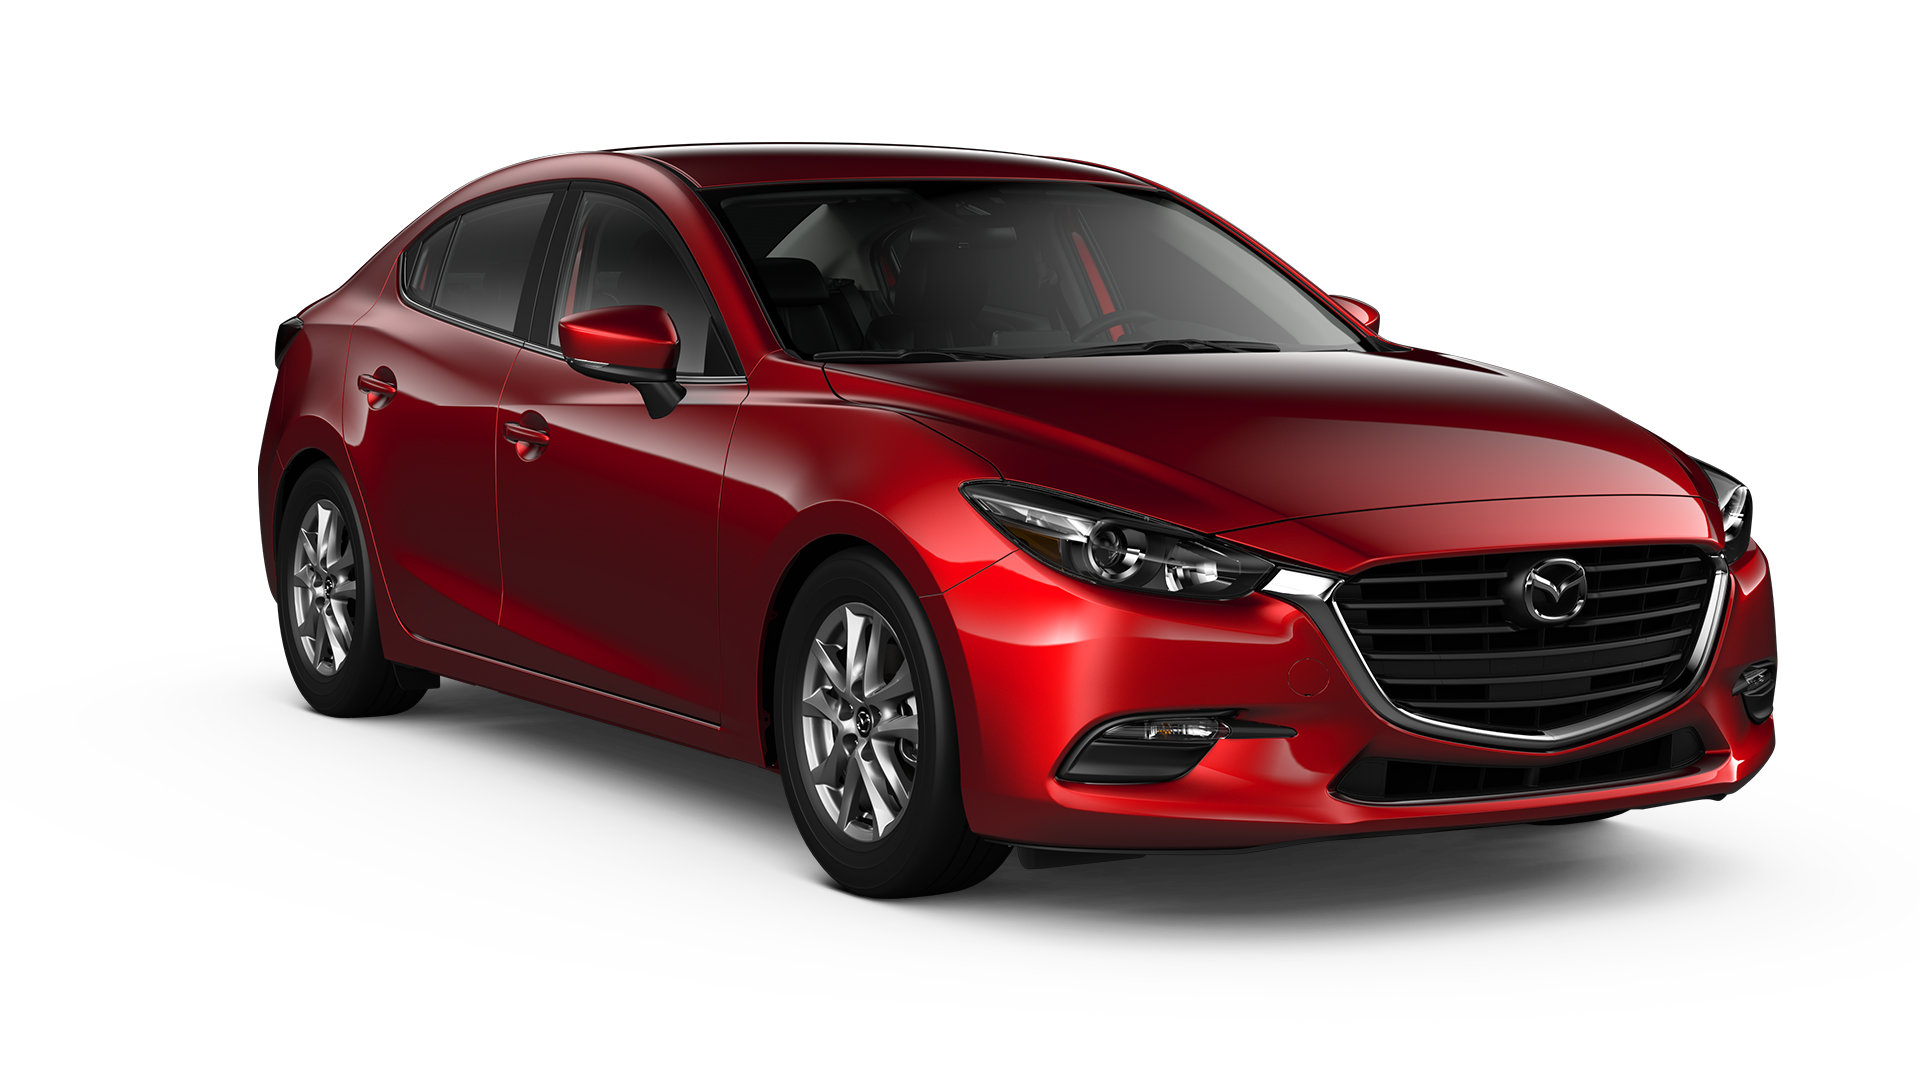 2018 mazda3 4 door compact sedan mazda canada. Black Bedroom Furniture Sets. Home Design Ideas